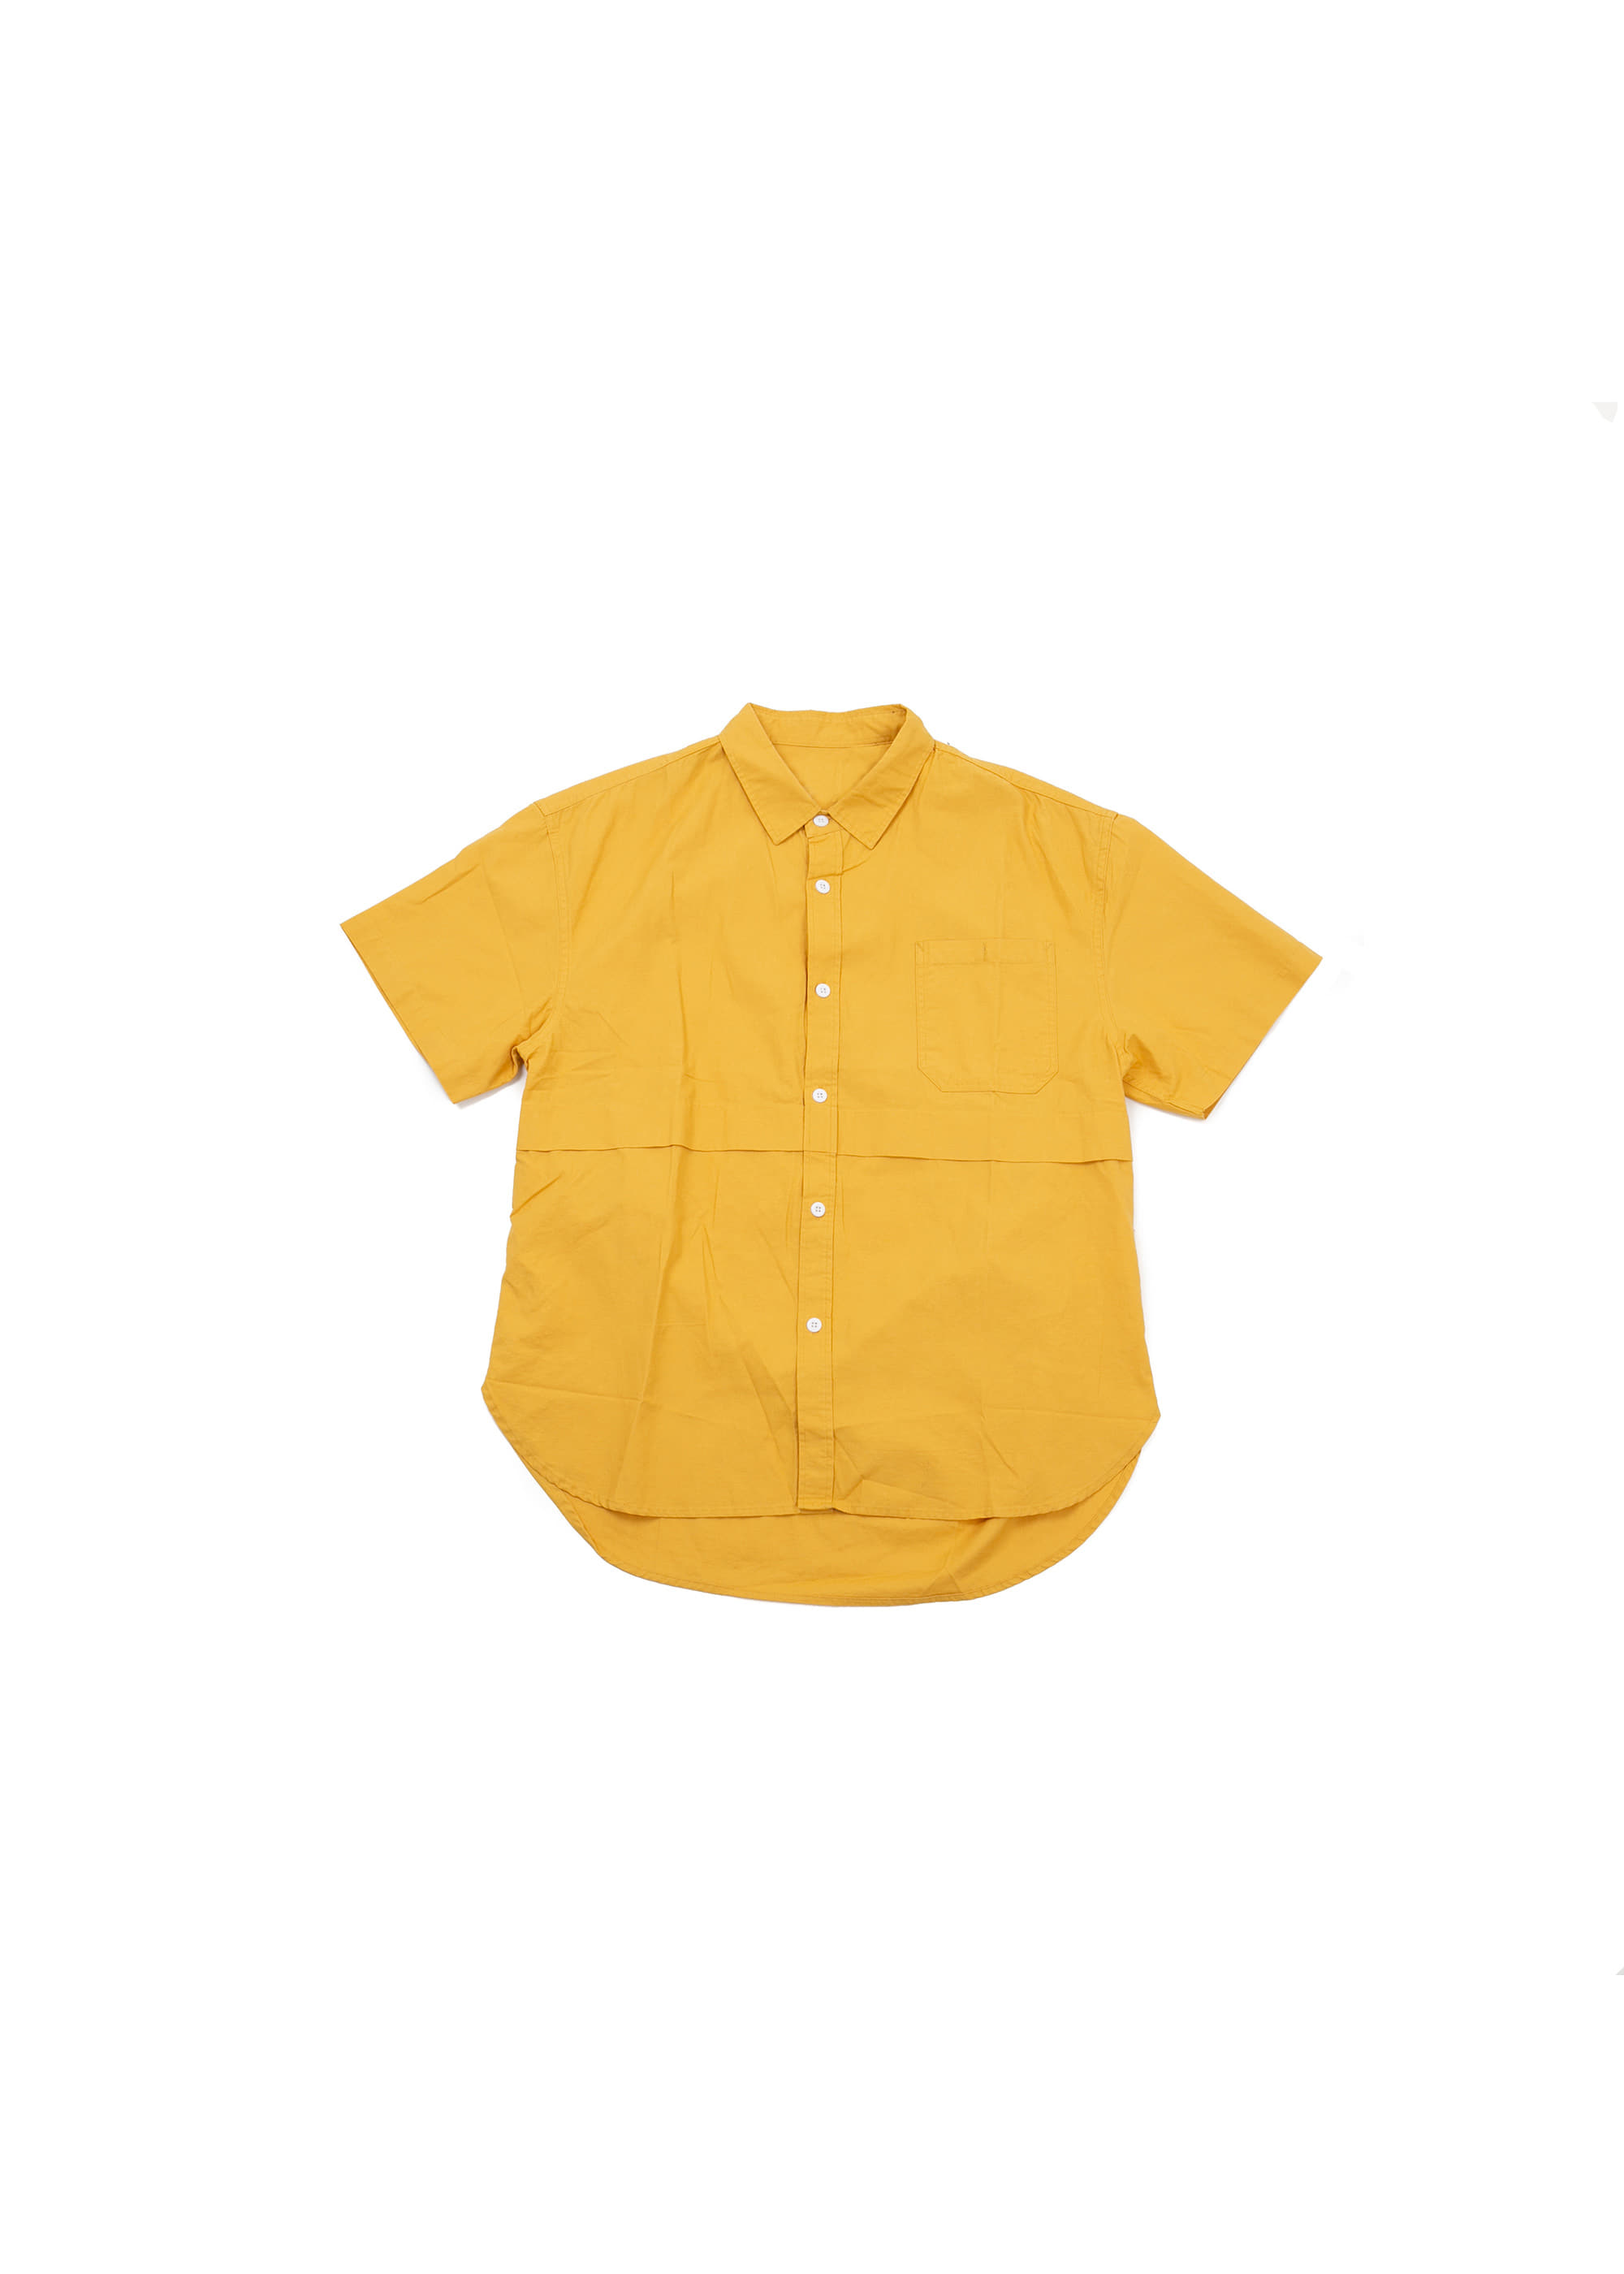 Half Basic Line Shirts - Yellow